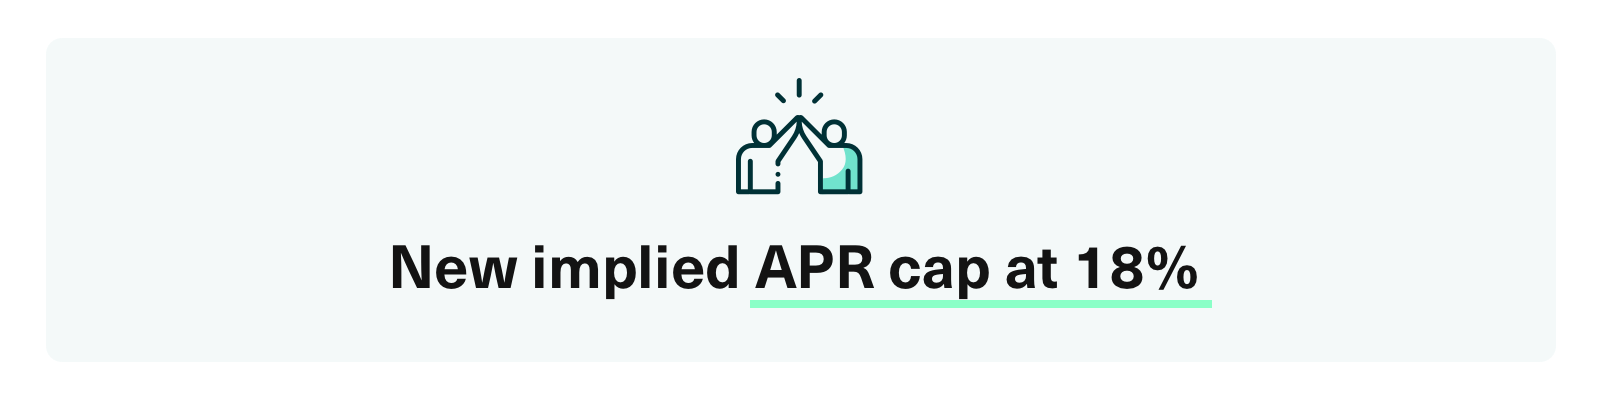 implied APR cap at 18%